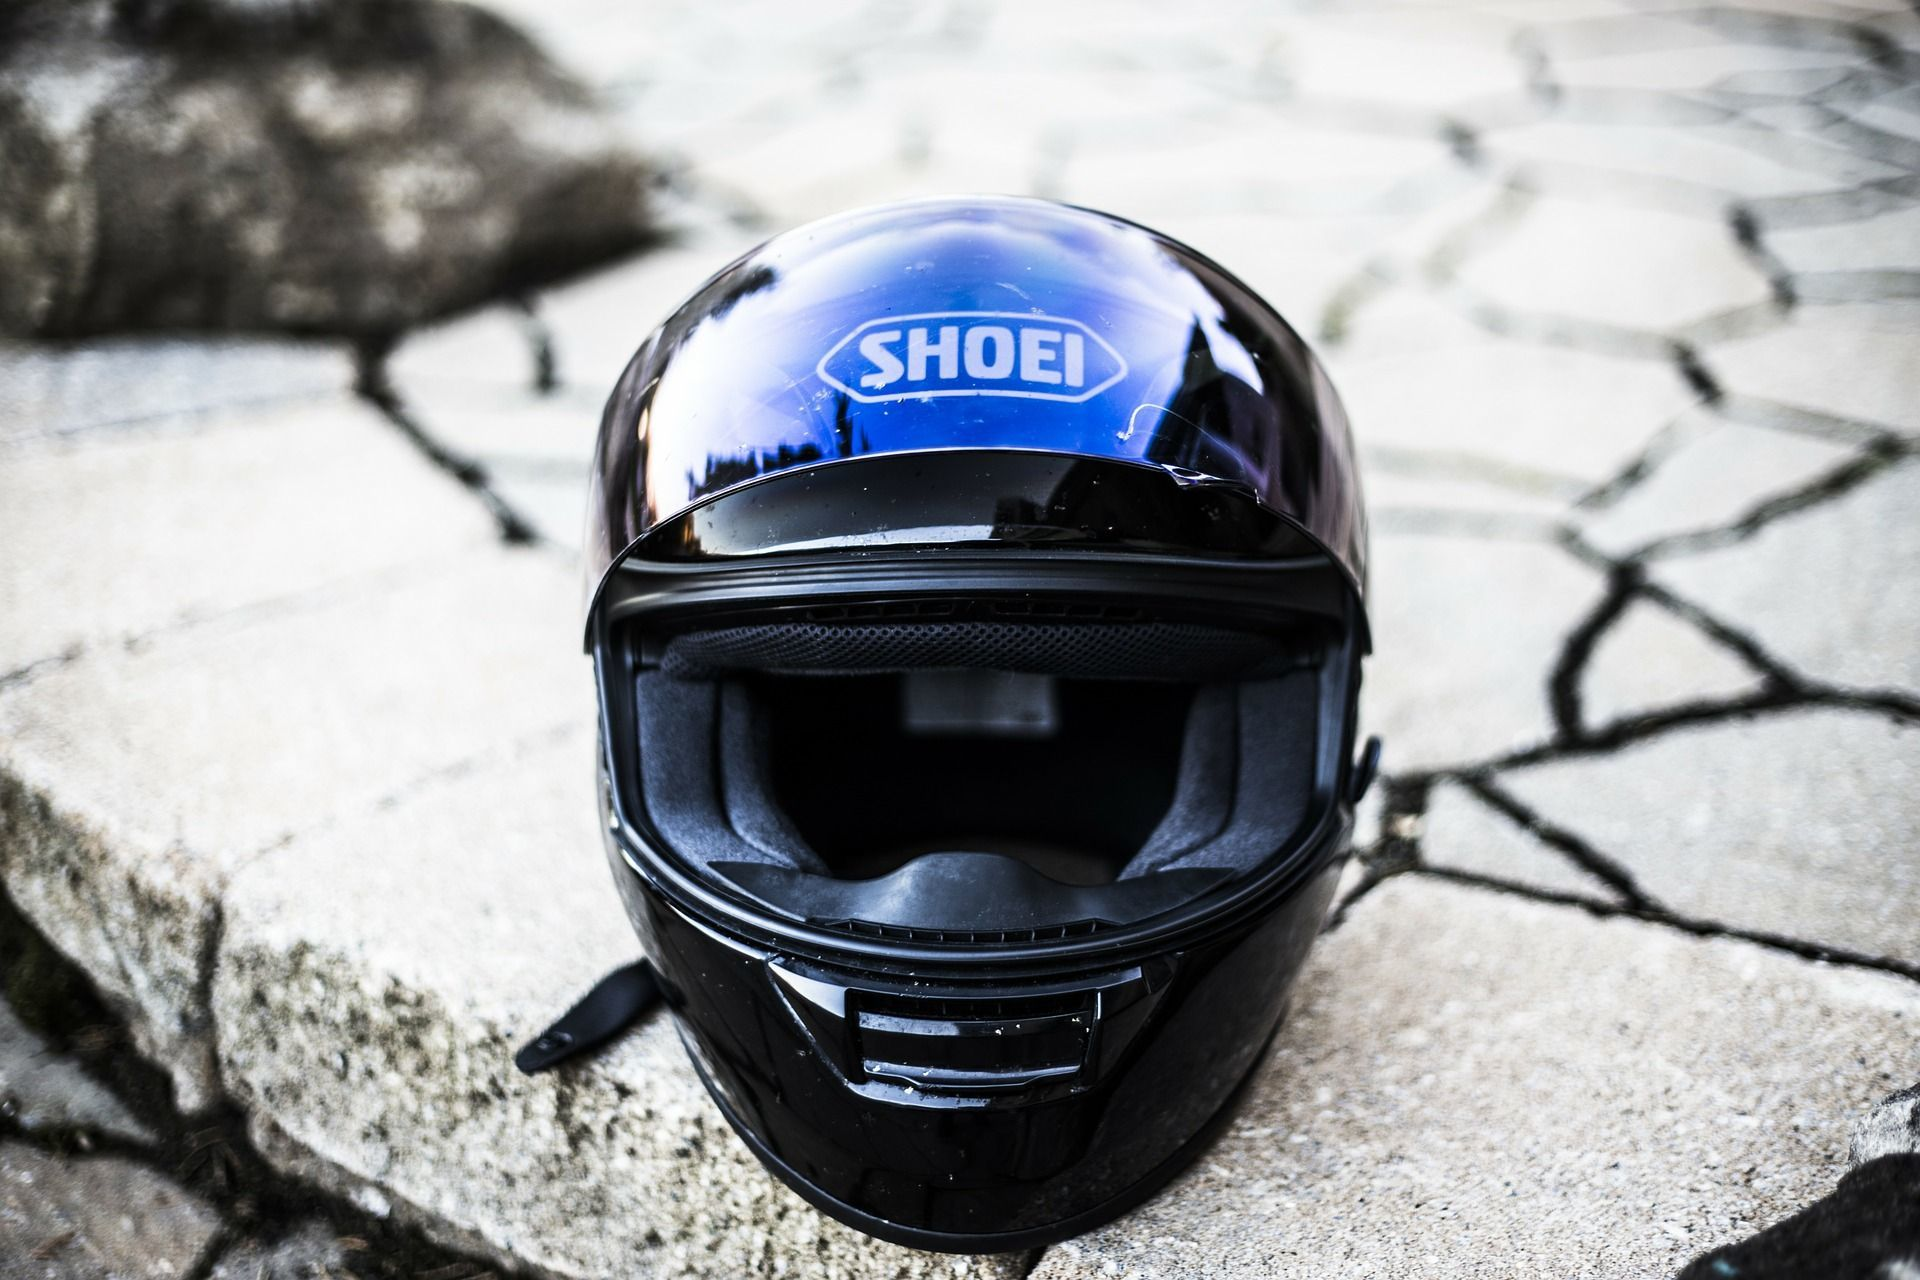 purple shoei bike helmet